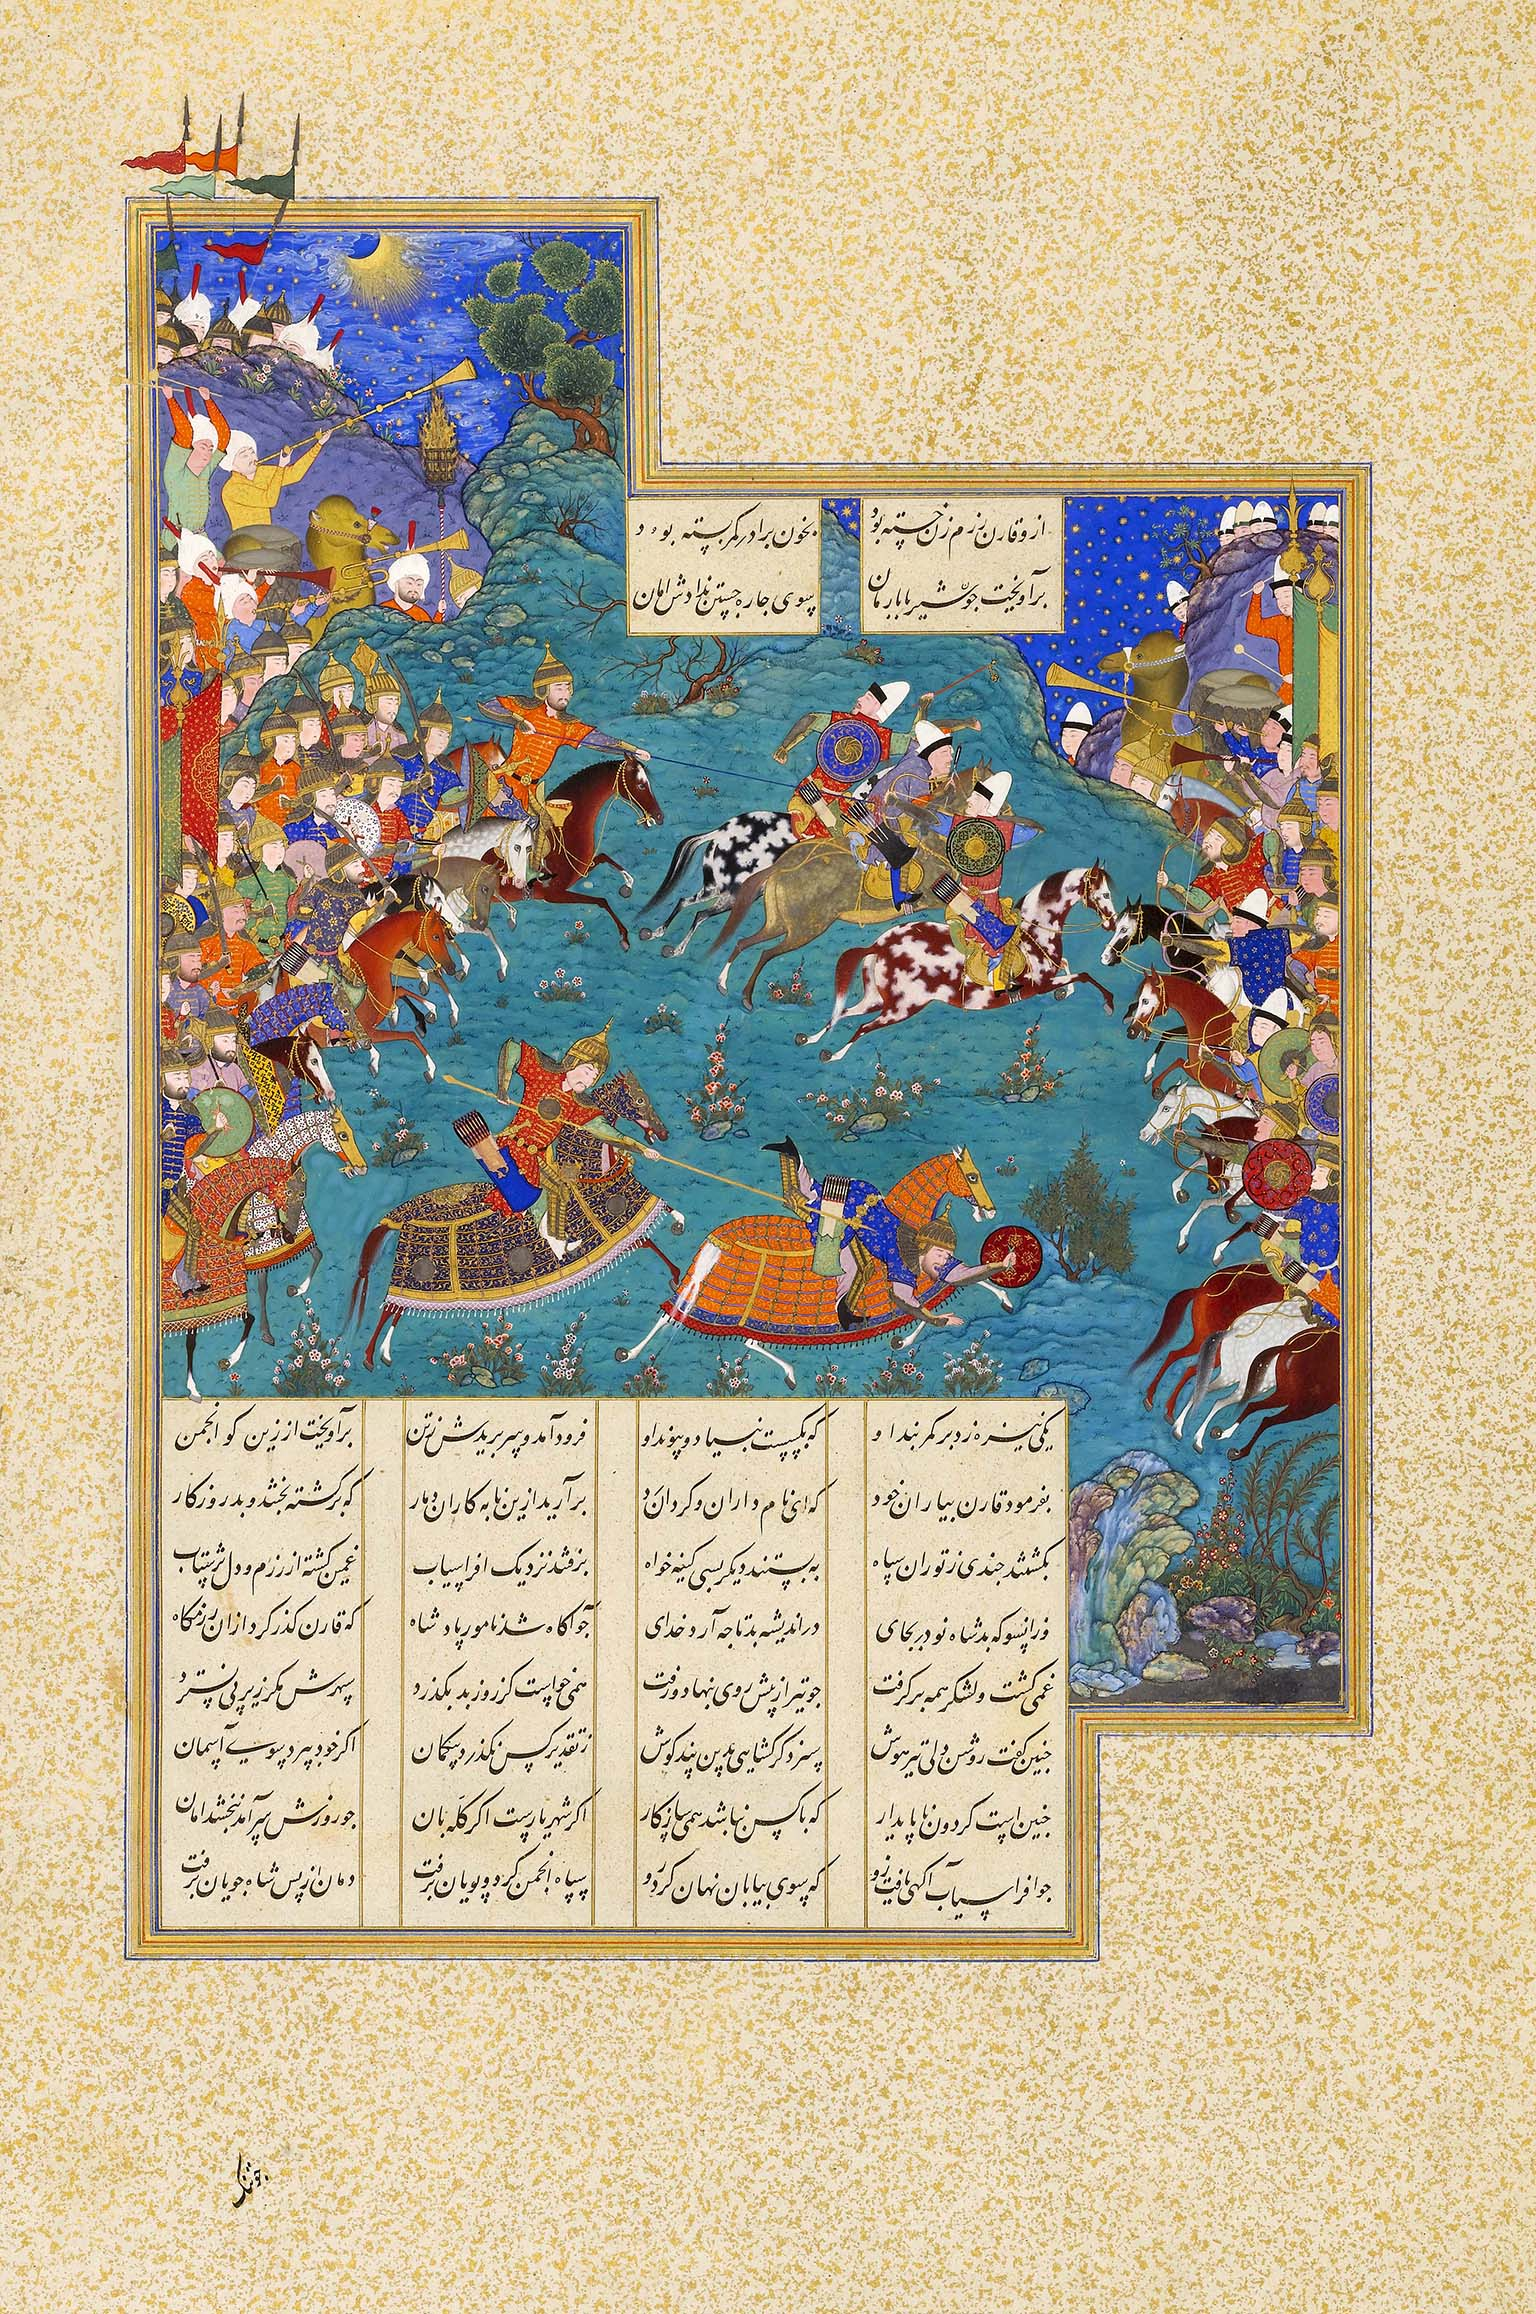 Detached folio from an illuminated manuscript of the Shahnameh for Shah Tahmasp, 1525-1535, Tabriz